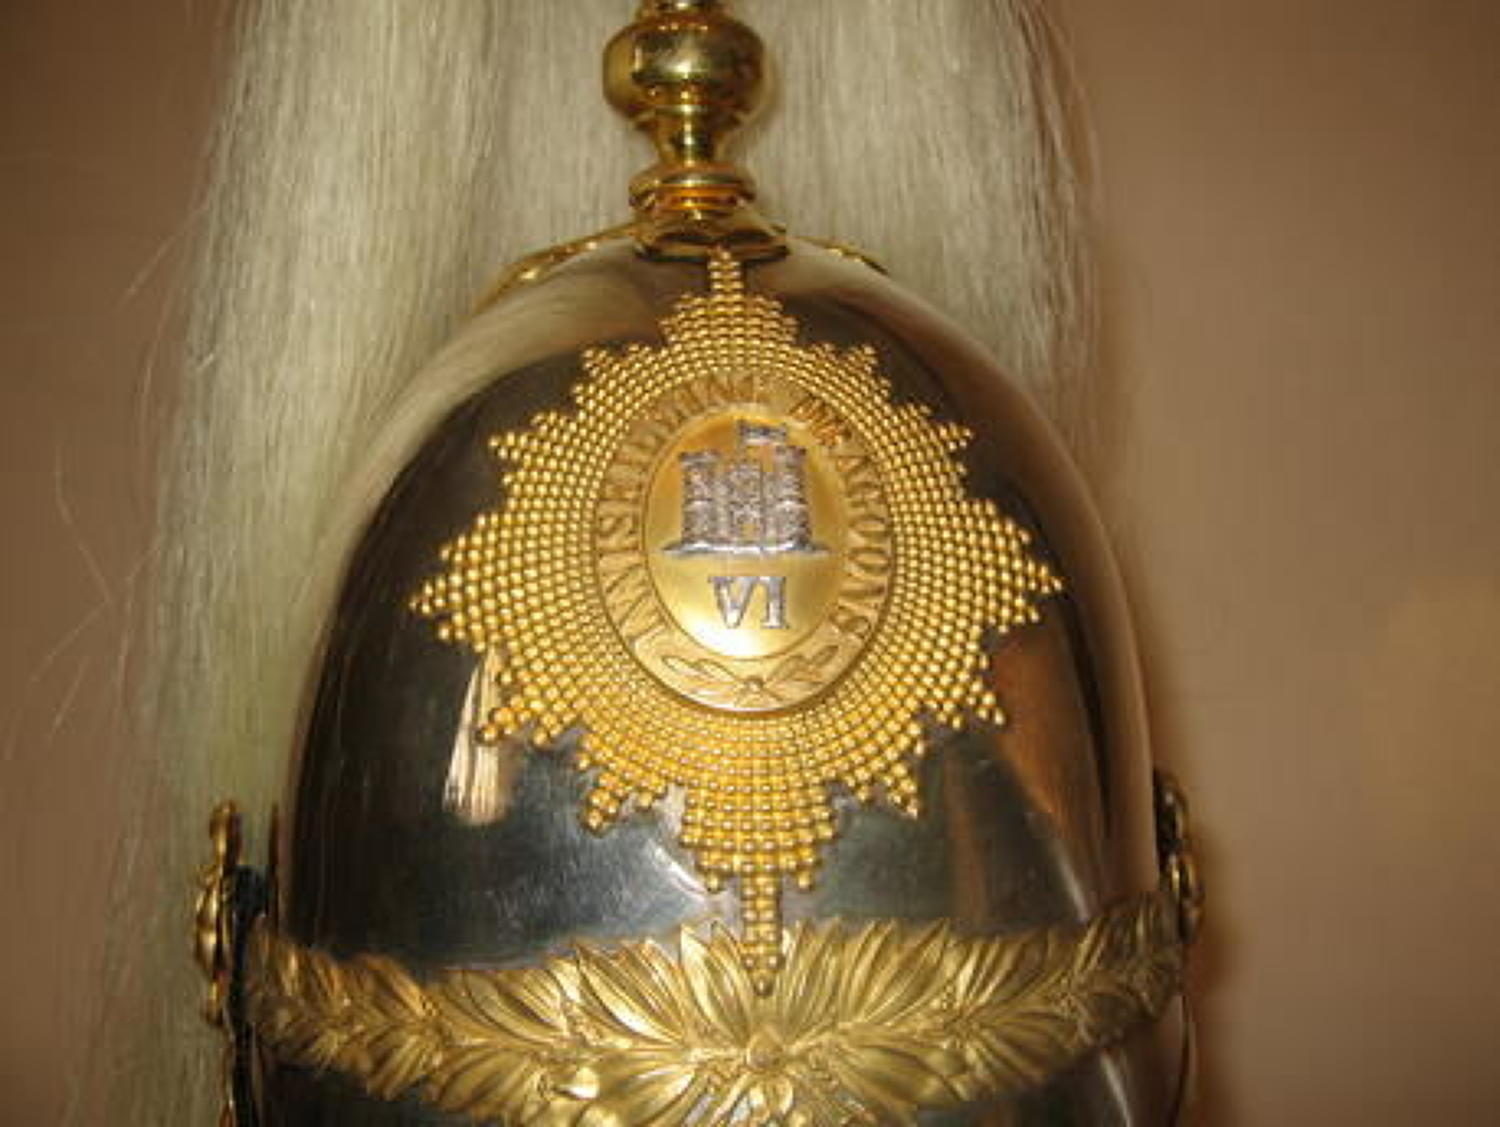 6th Inniskilling Dragoon Guards Officer's post 1871 Helmet.